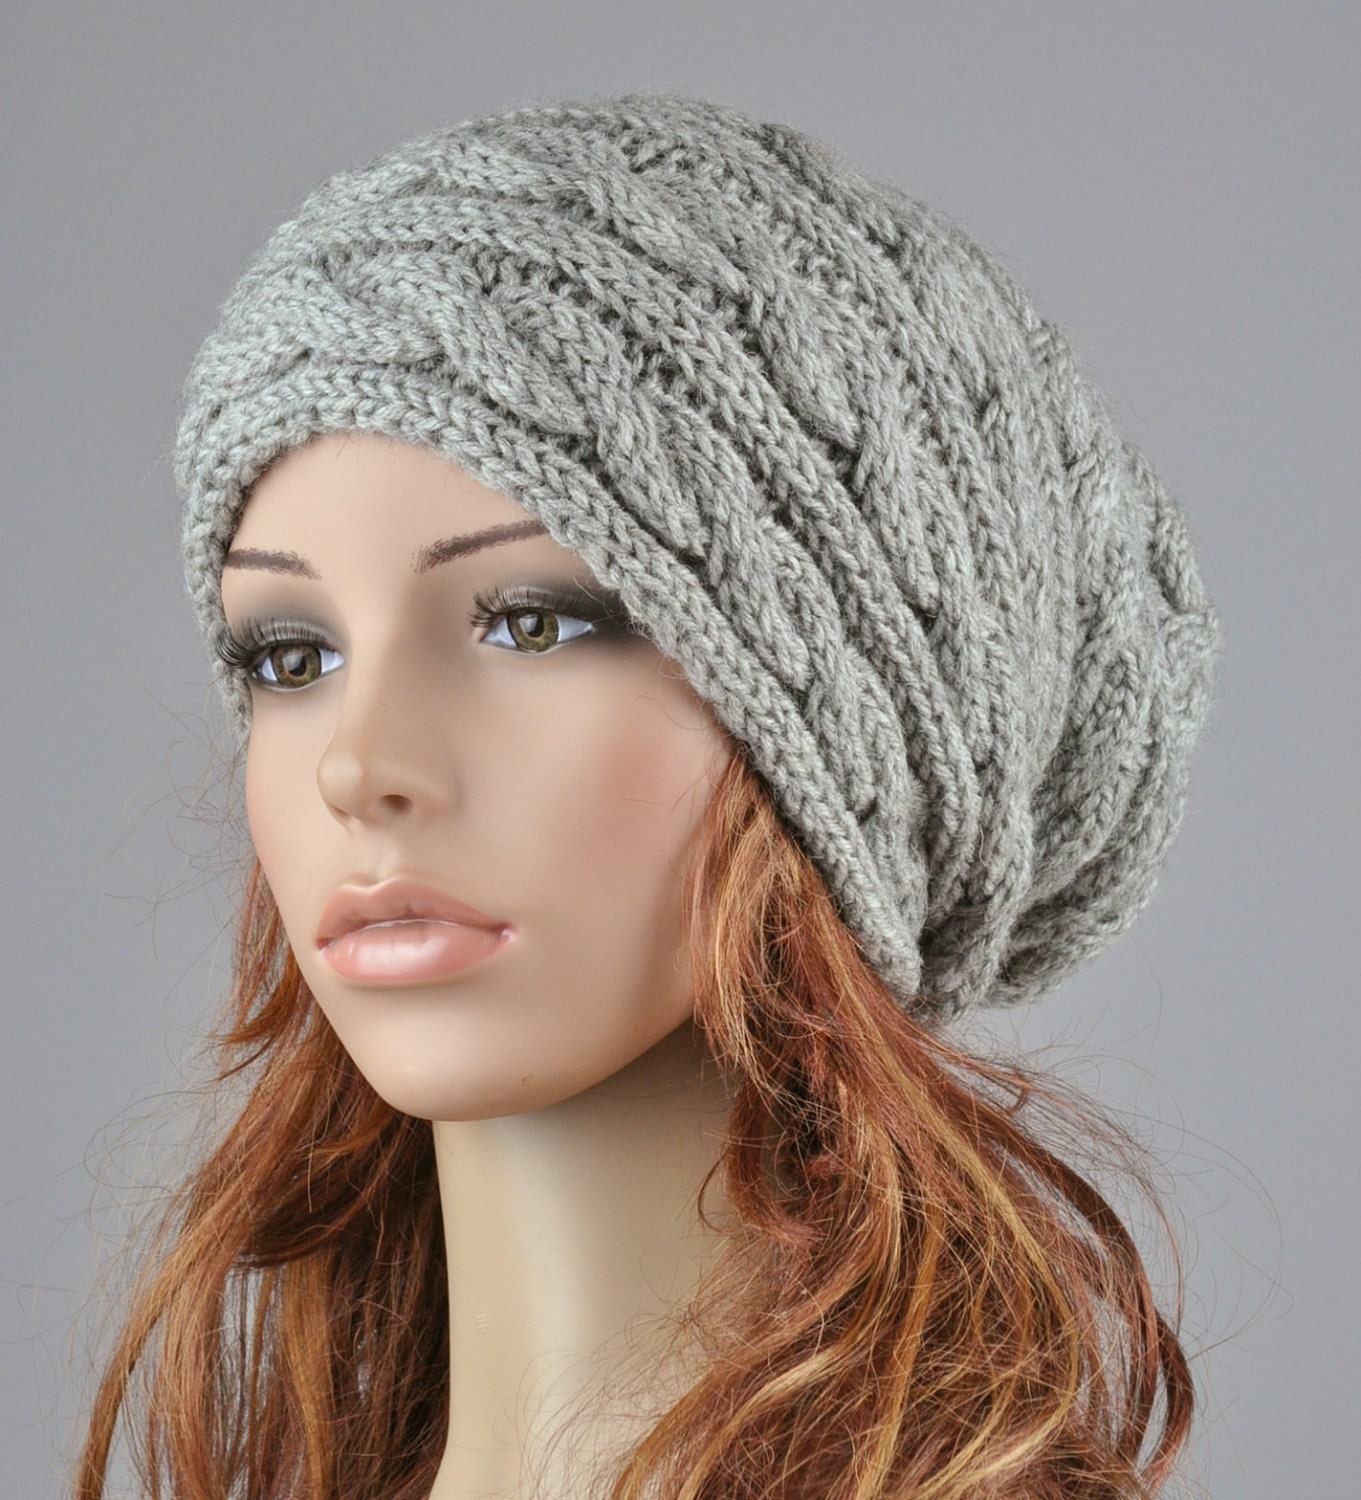 Slouchy Cable Knit Hat Pattern : Hand knit hat Grey hat slouchy hat cable pattern hat